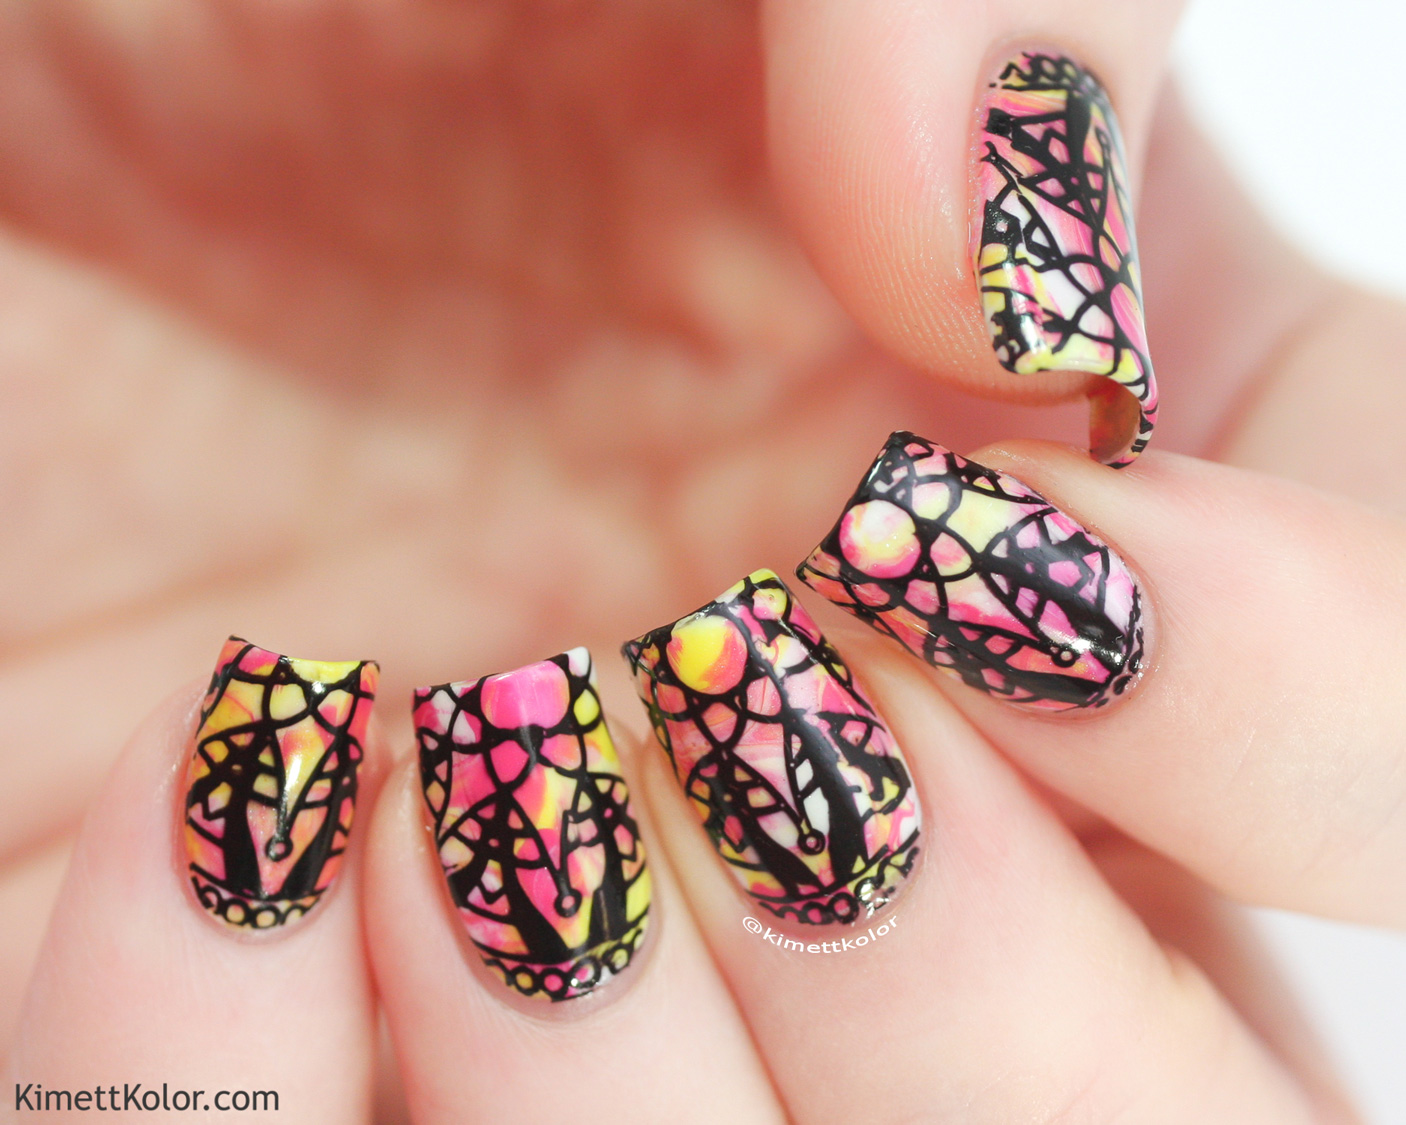 KimettKolor Stamping in Black Nail Art Tips